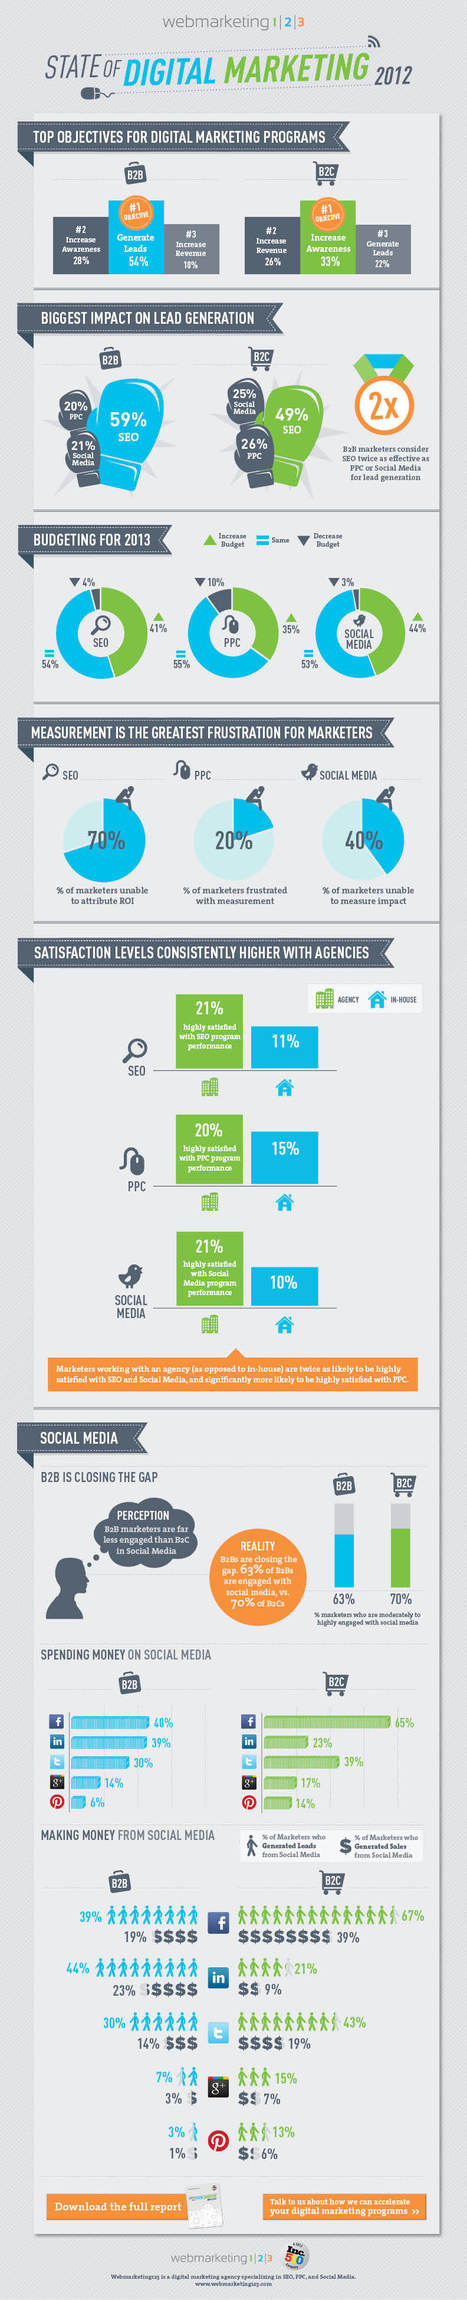 2012 State of Digital Marketing Report | Marketing & Webmarketing | Scoop.it